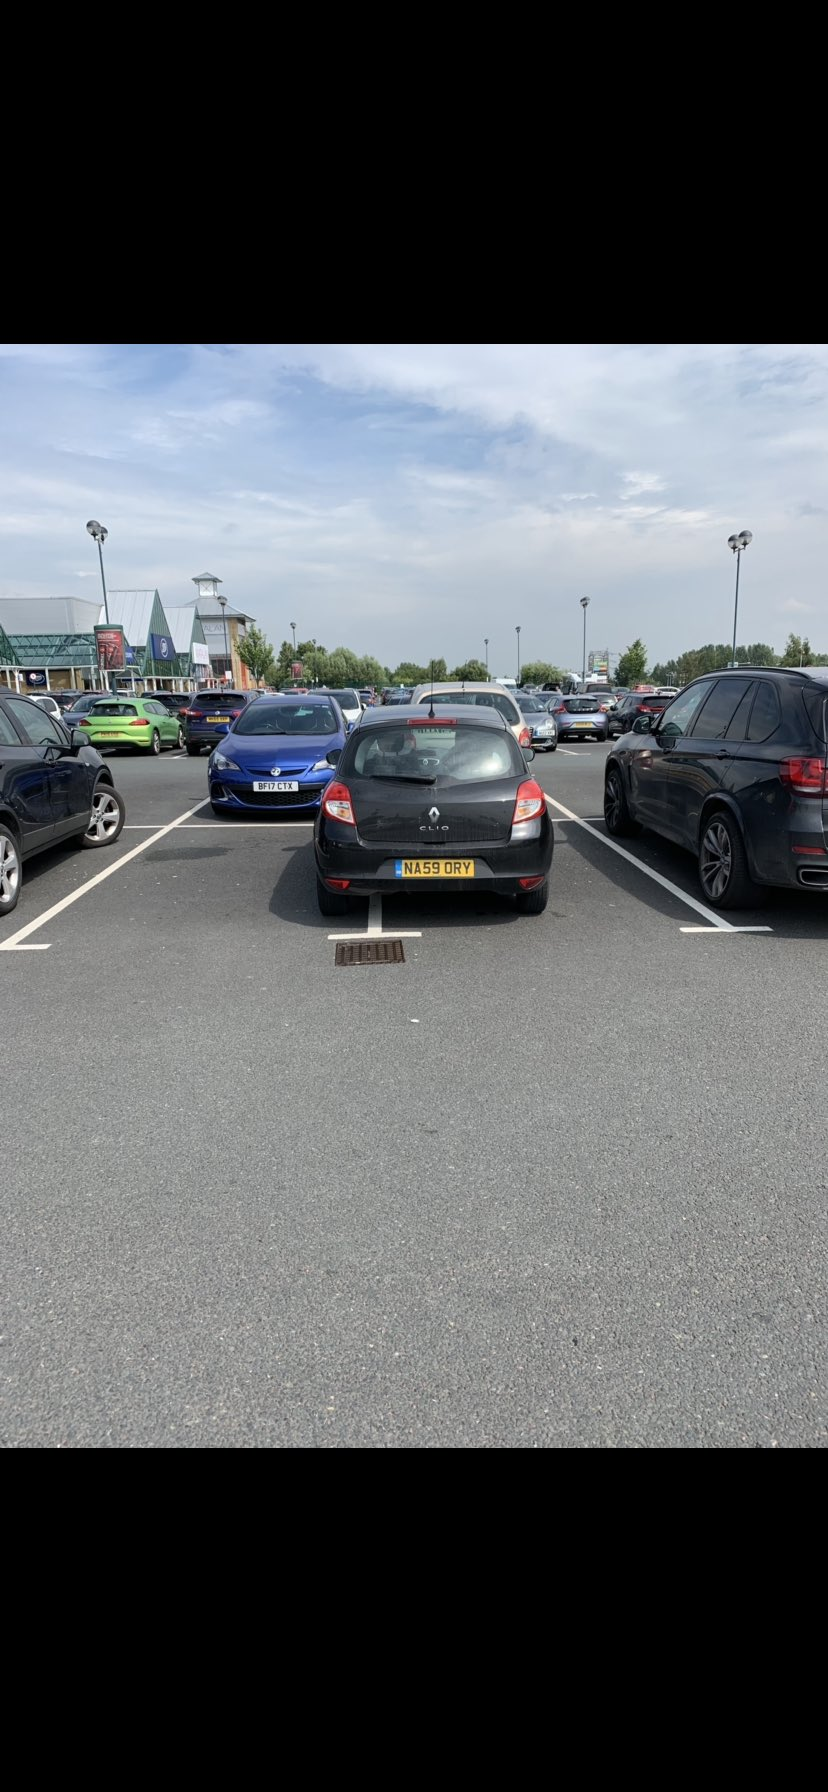 NA59 ORY is an Inconsiderate Parker